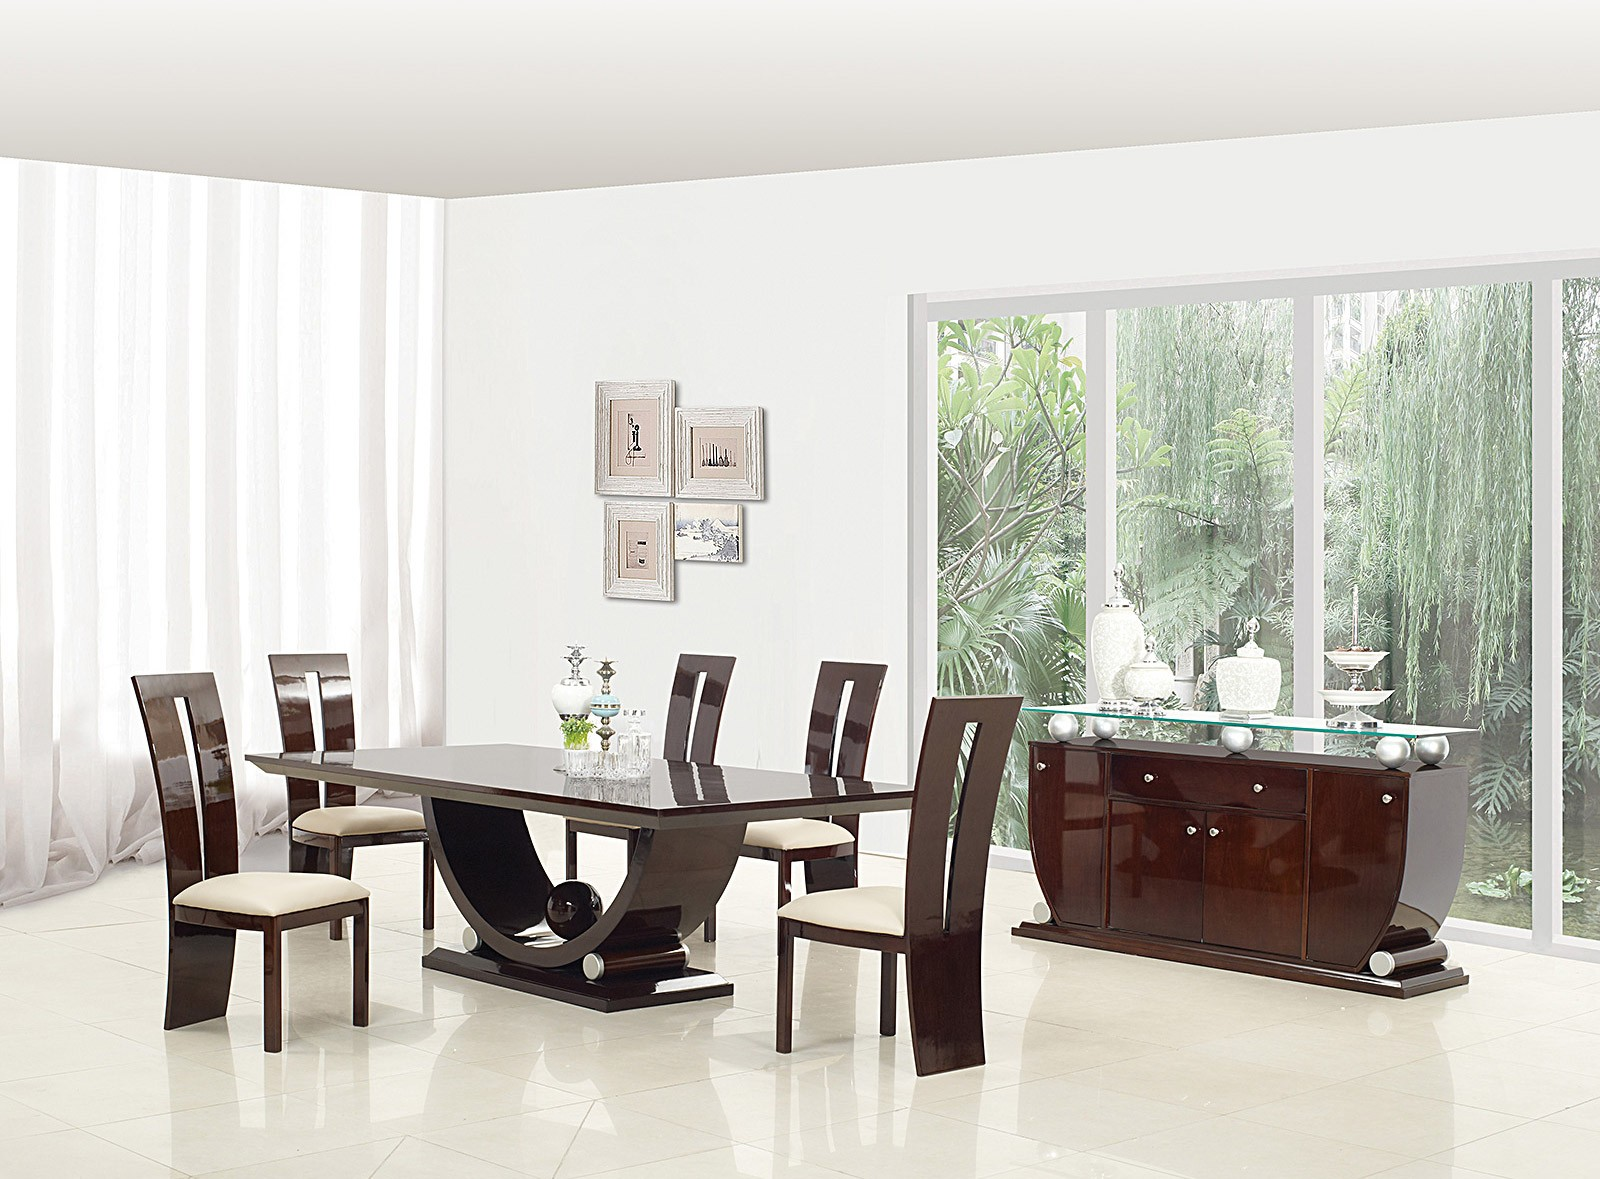 Incredible D12117 Dining Room Set In Dark Brown Lacquer Finish Download Free Architecture Designs Scobabritishbridgeorg